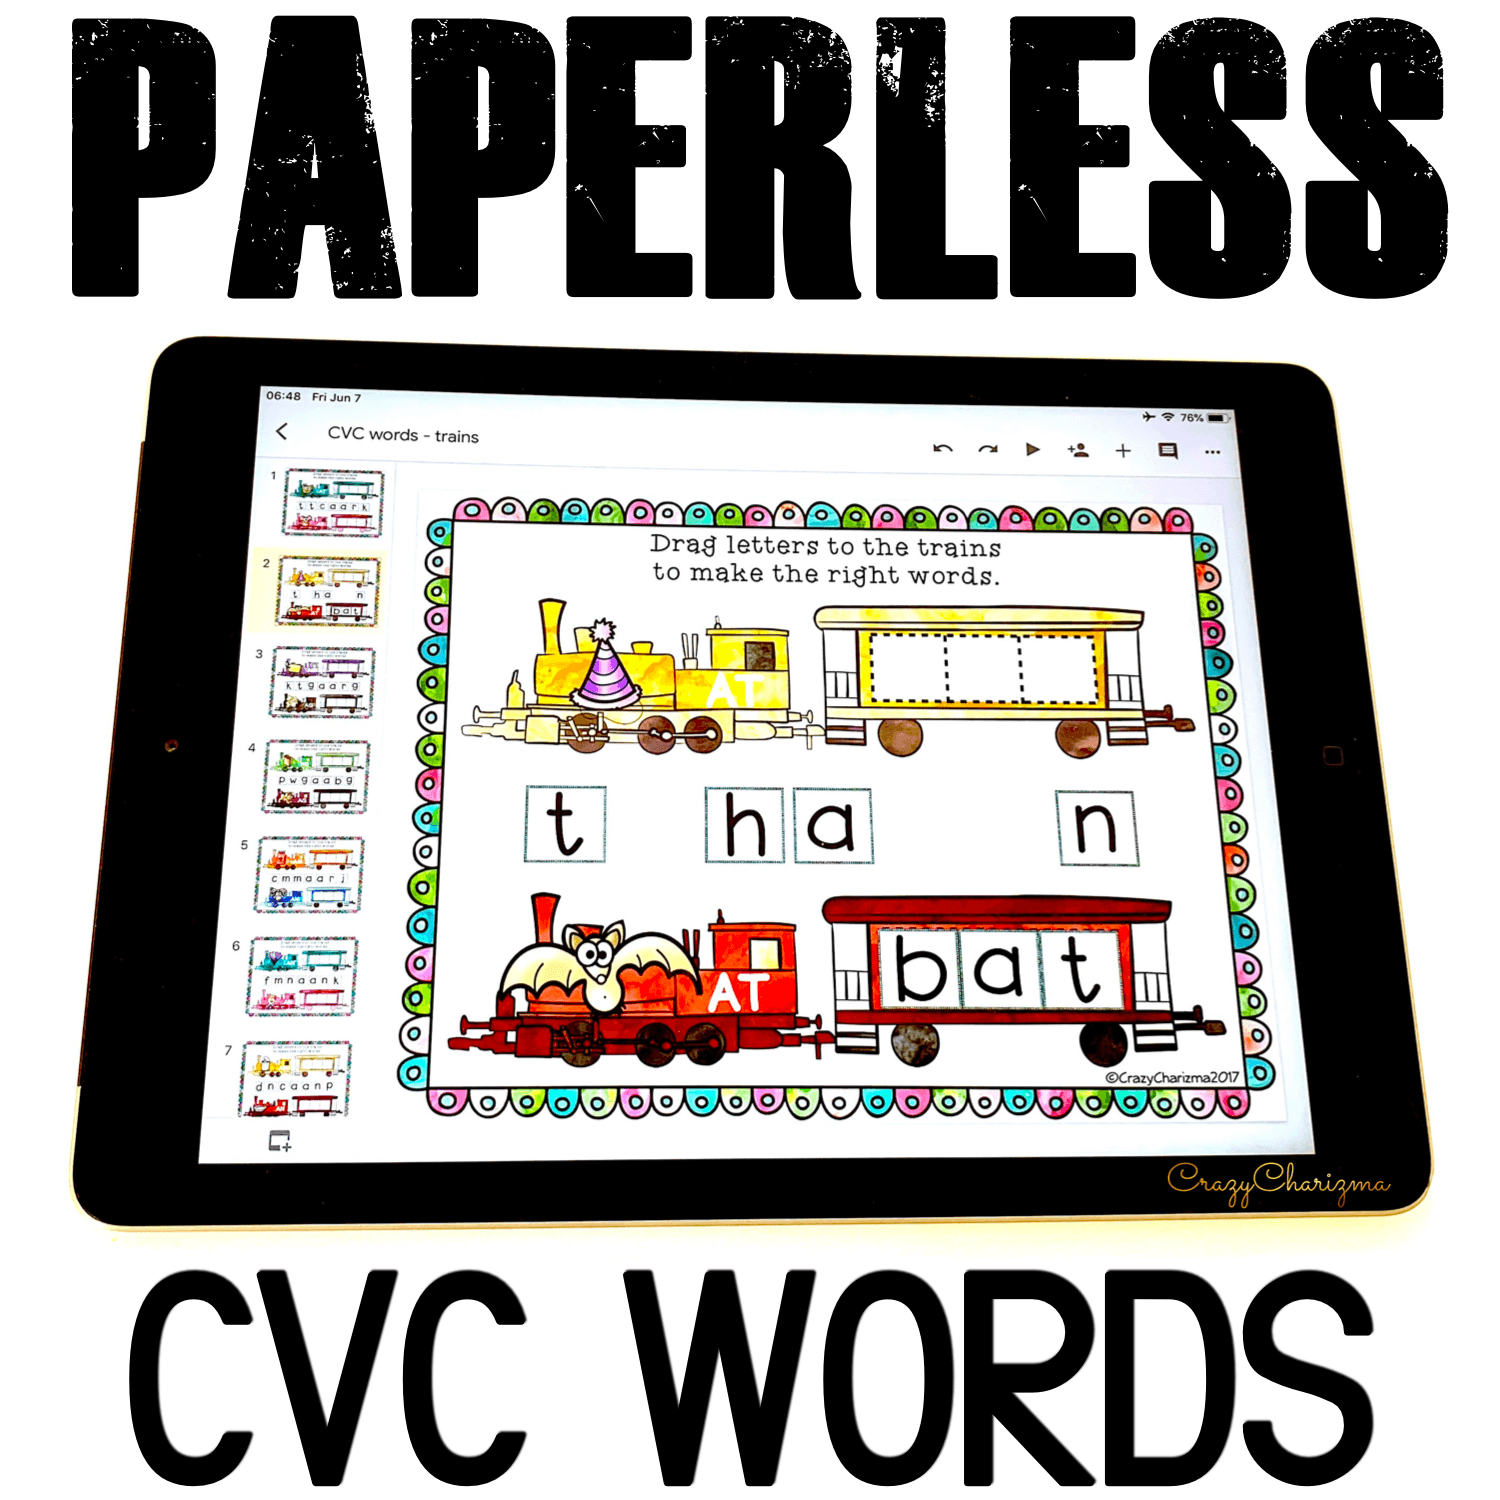 Google Classroom Activities for Kindergarten. CVC Words Games. Grab this digital word work and get kids engaged with fun CVC words practice! Use during guided reading groups, literacy centers, 1:1 work, and for homework.  #CrazyCharizma #GoogleClassroom #GoogleClassroomKindergarten #HandsOnActivitiesForKids #PaperlessClassroomElementary #PhonicsActivities